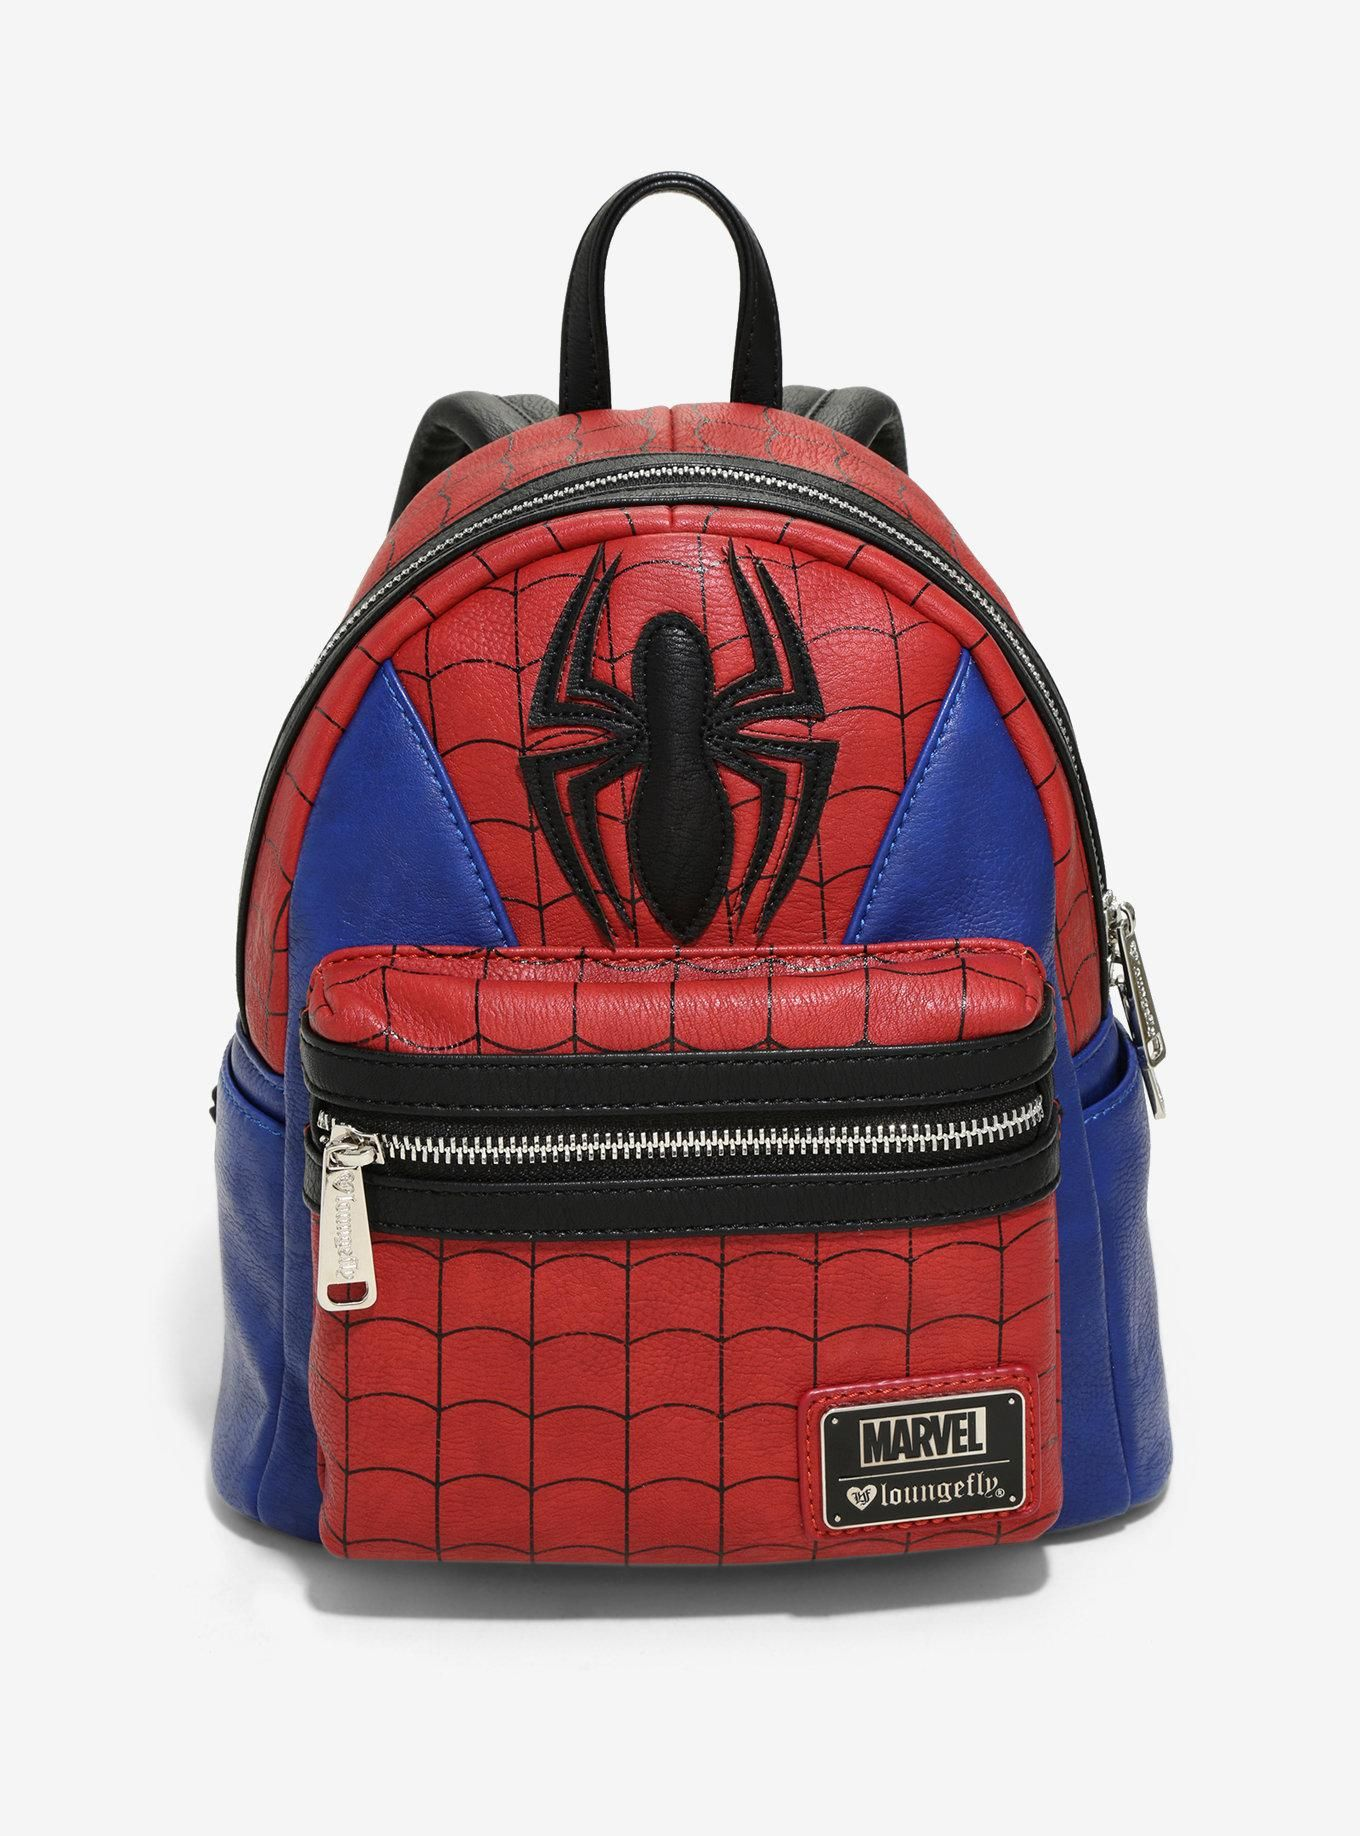 45dde2b6a67 Loungefly Marvel Spider-Man Suit Mini Backpack